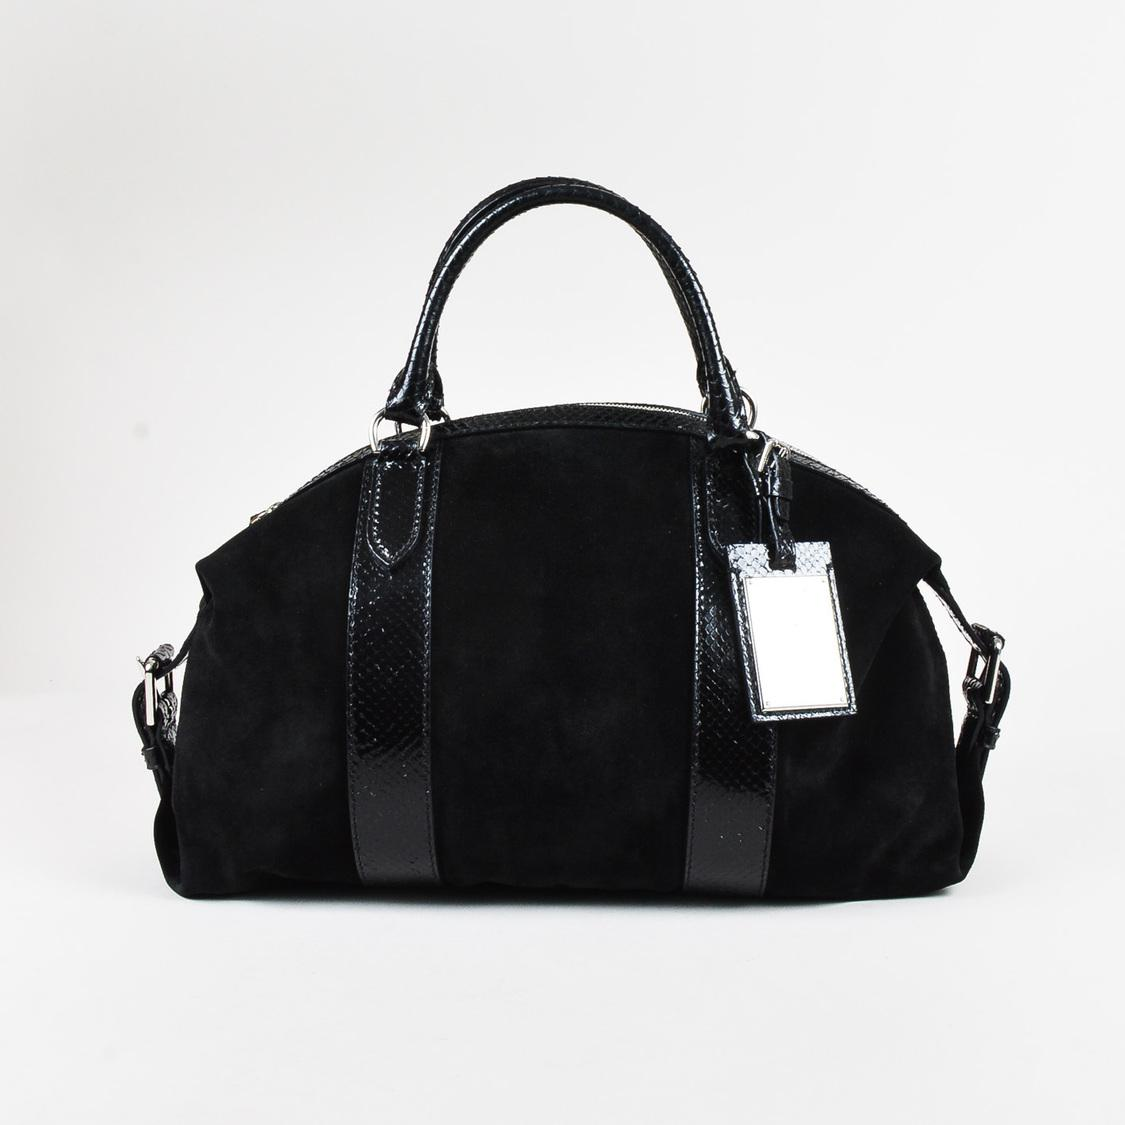 5a258b739b Lyst - Ralph Lauren Black Suede Genuine Python Trim Boston Satchel ...